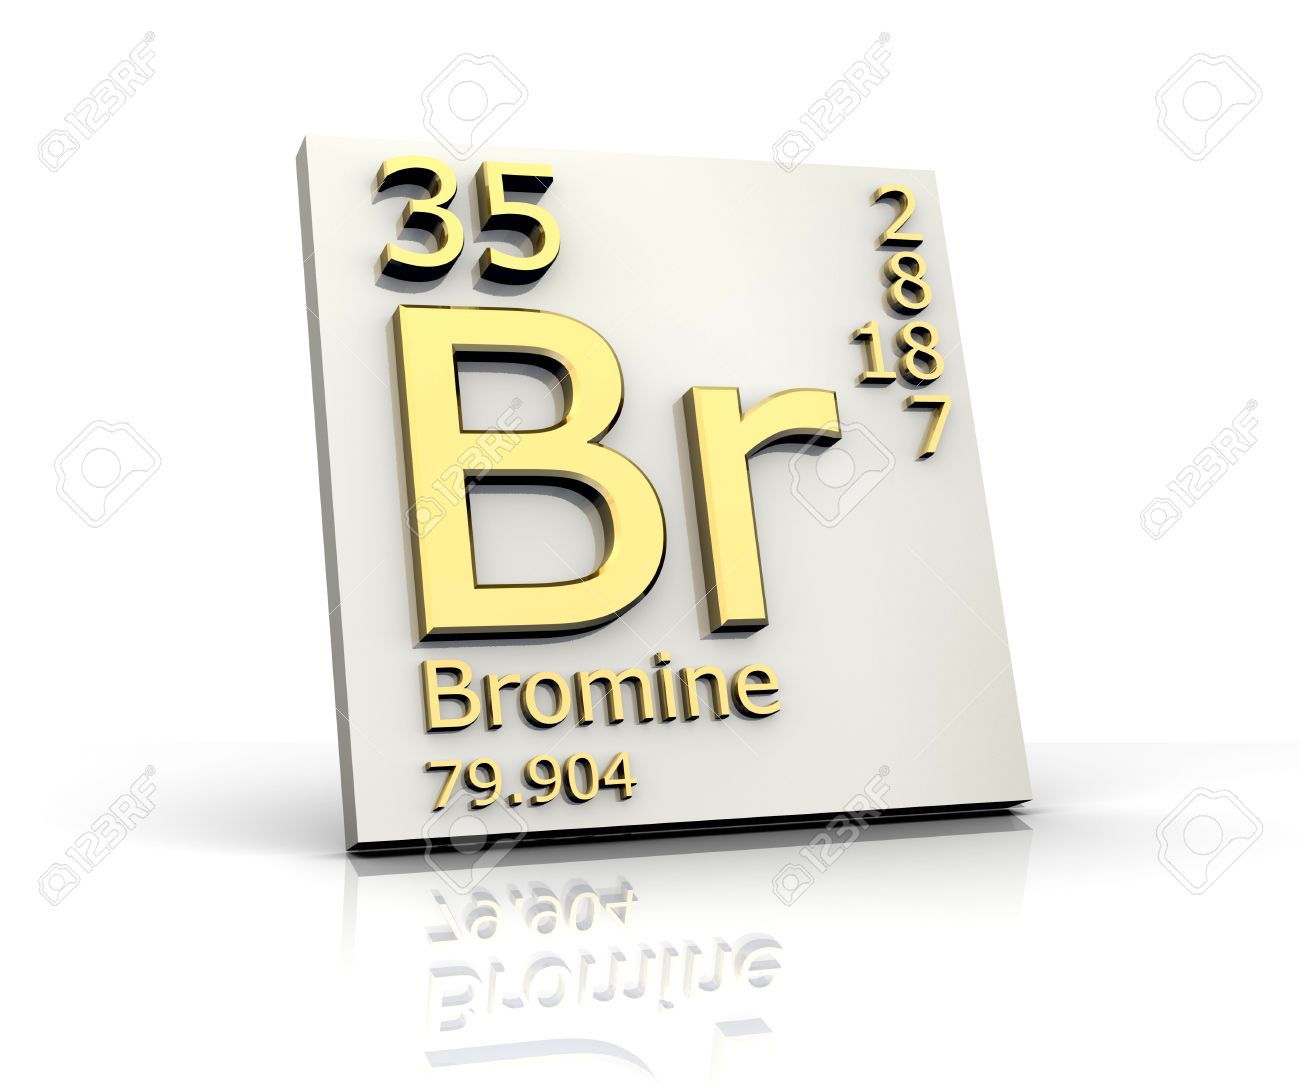 Bromine Form Periodic Table Of Elements Stock Photo, Picture And ...